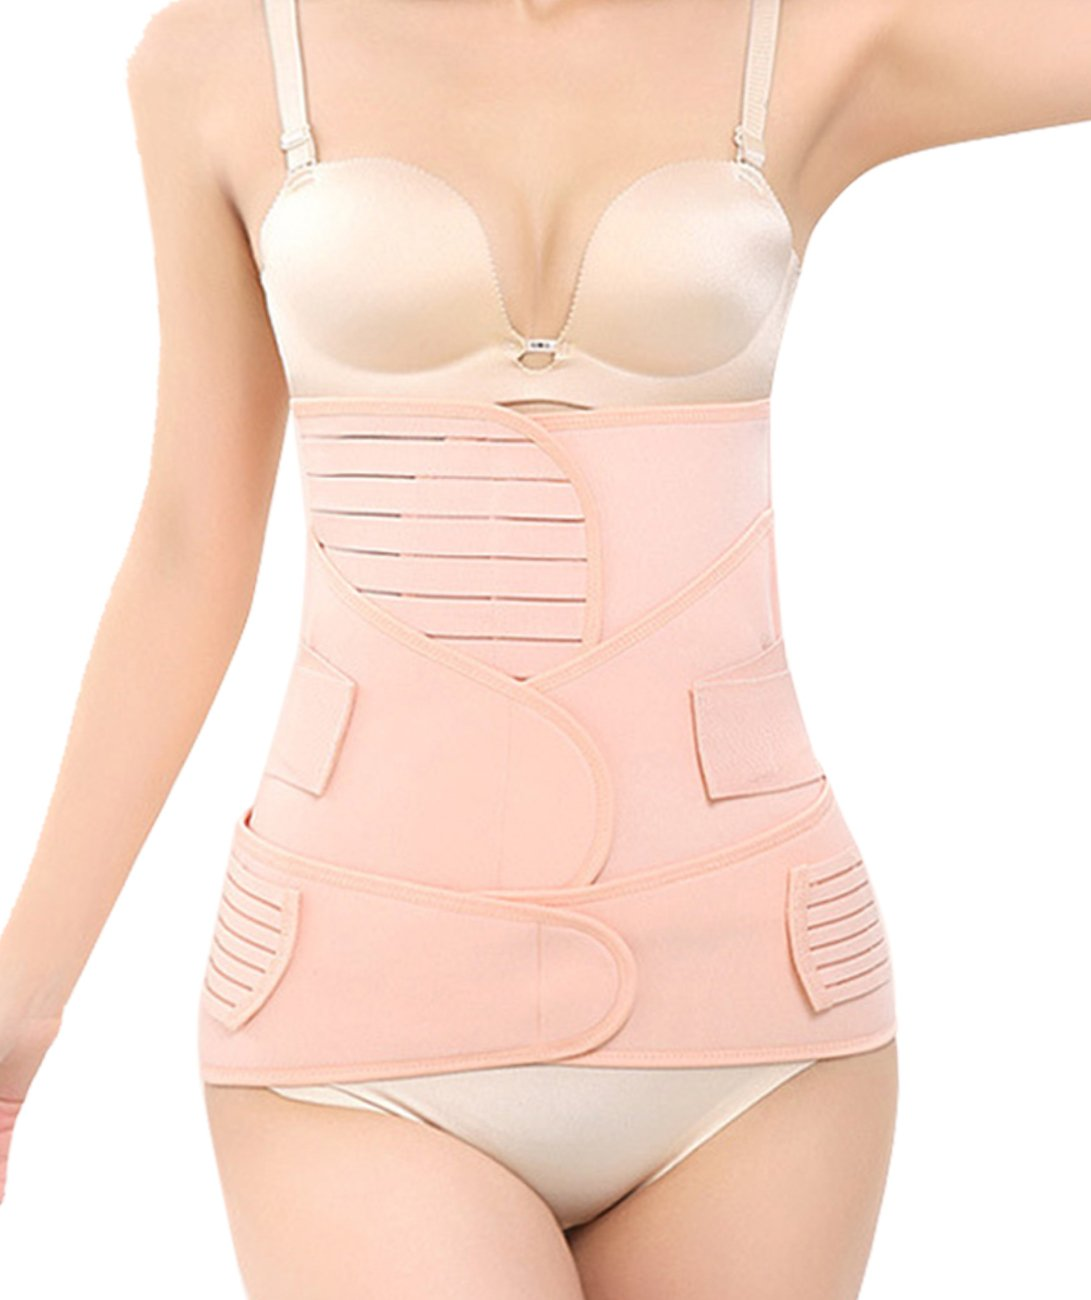 Women 3 in 1 Postpartum Girdle C Section Corset Recovery Belly Band Wrap Belt